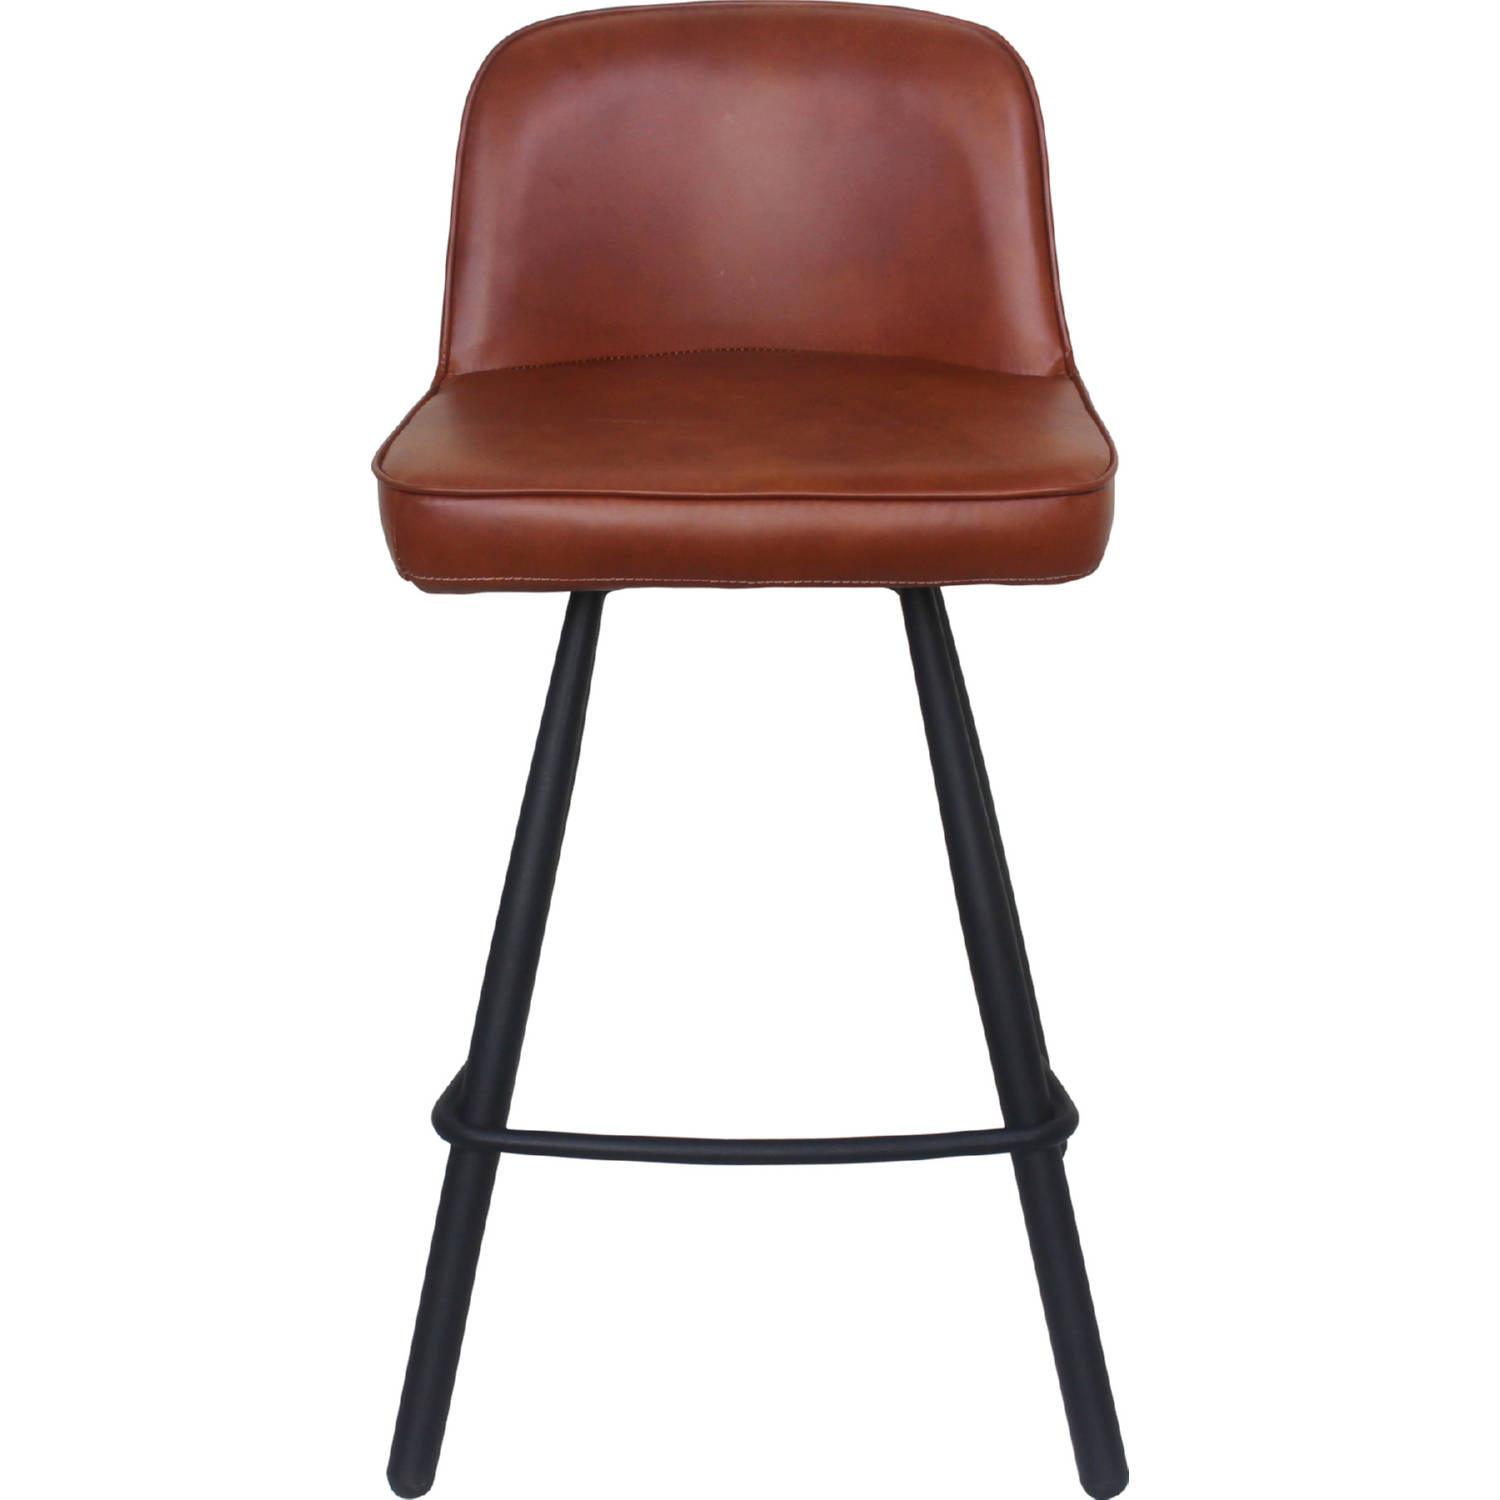 Enjoyable Eisley Counter Stool In Brown Leatherette On Metal Legs By Moes Home Collection Gmtry Best Dining Table And Chair Ideas Images Gmtryco